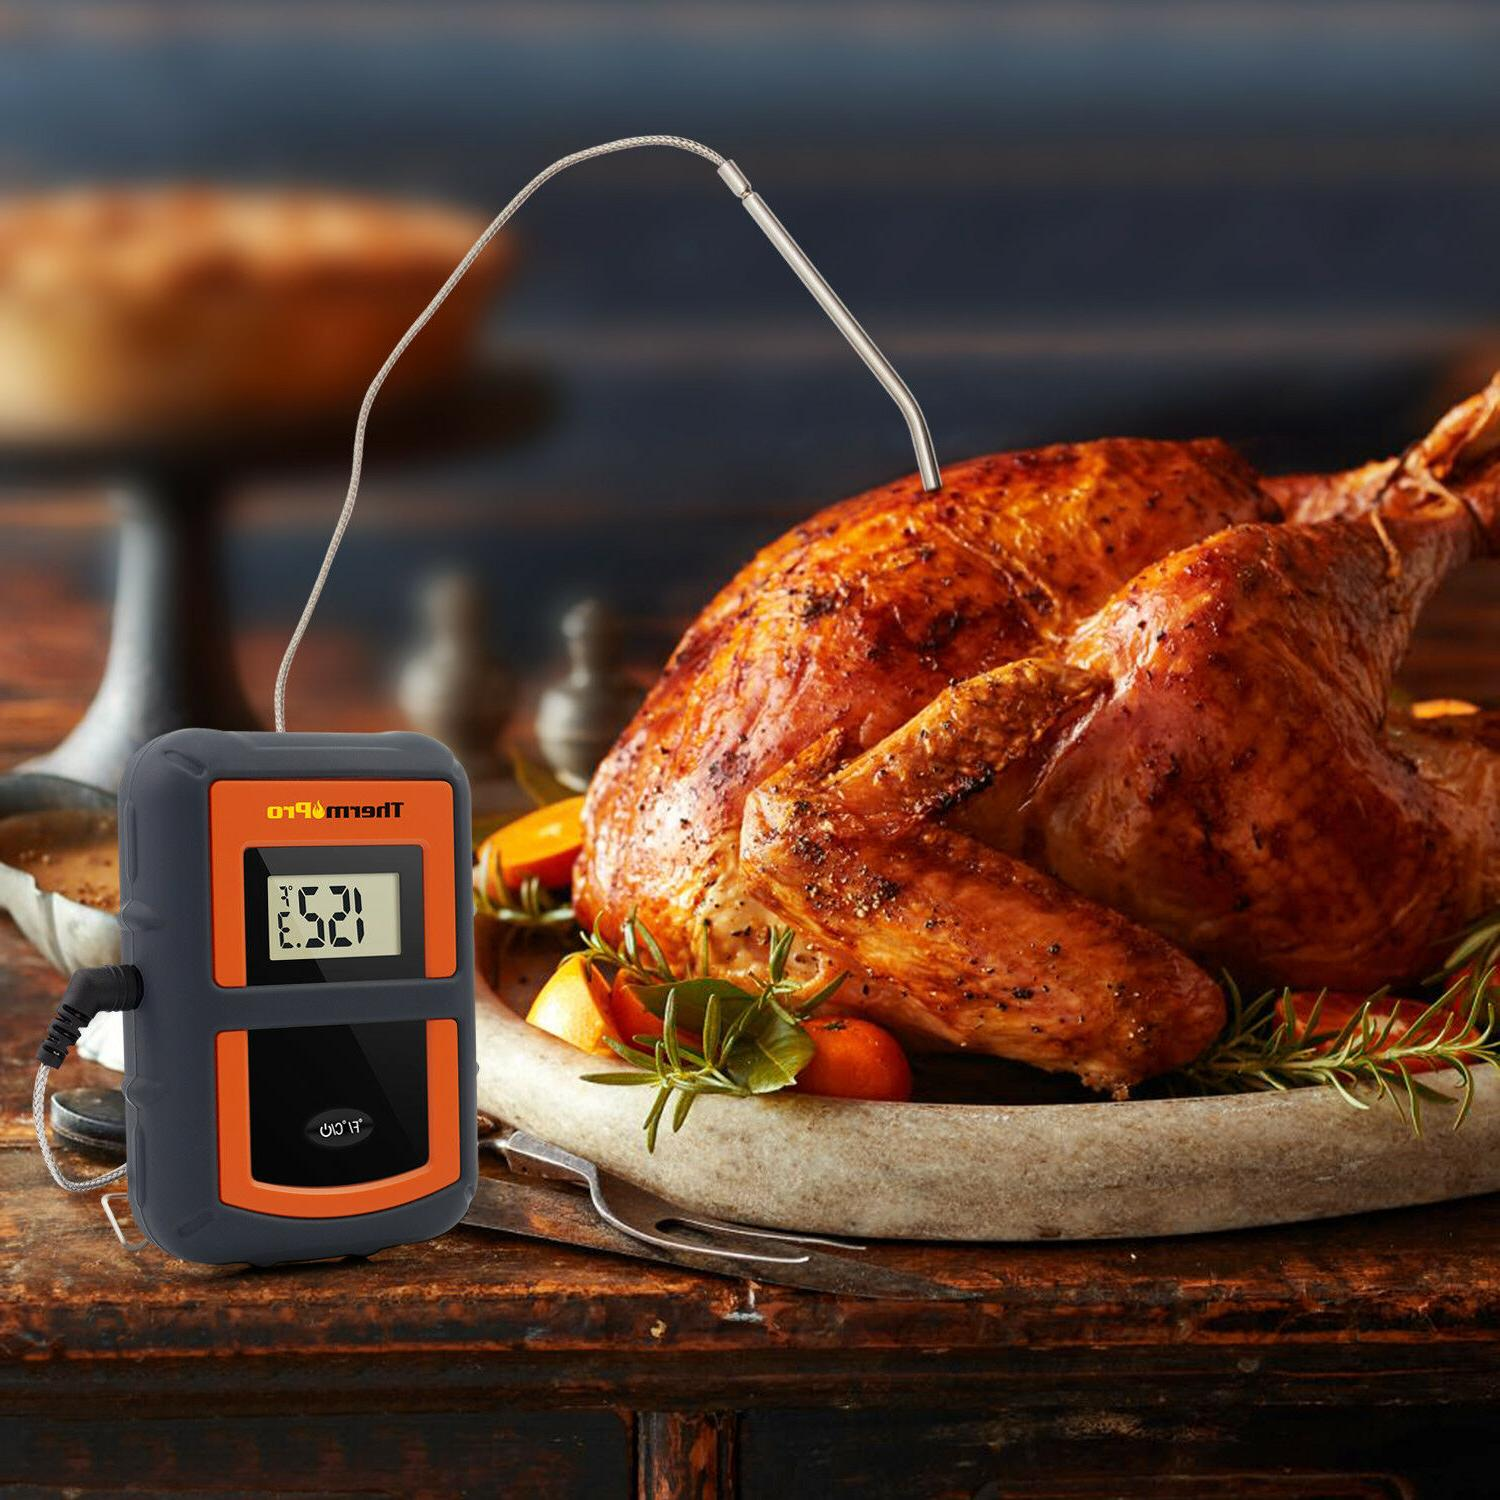 ThermoPro Meat Grill Oven Smoker